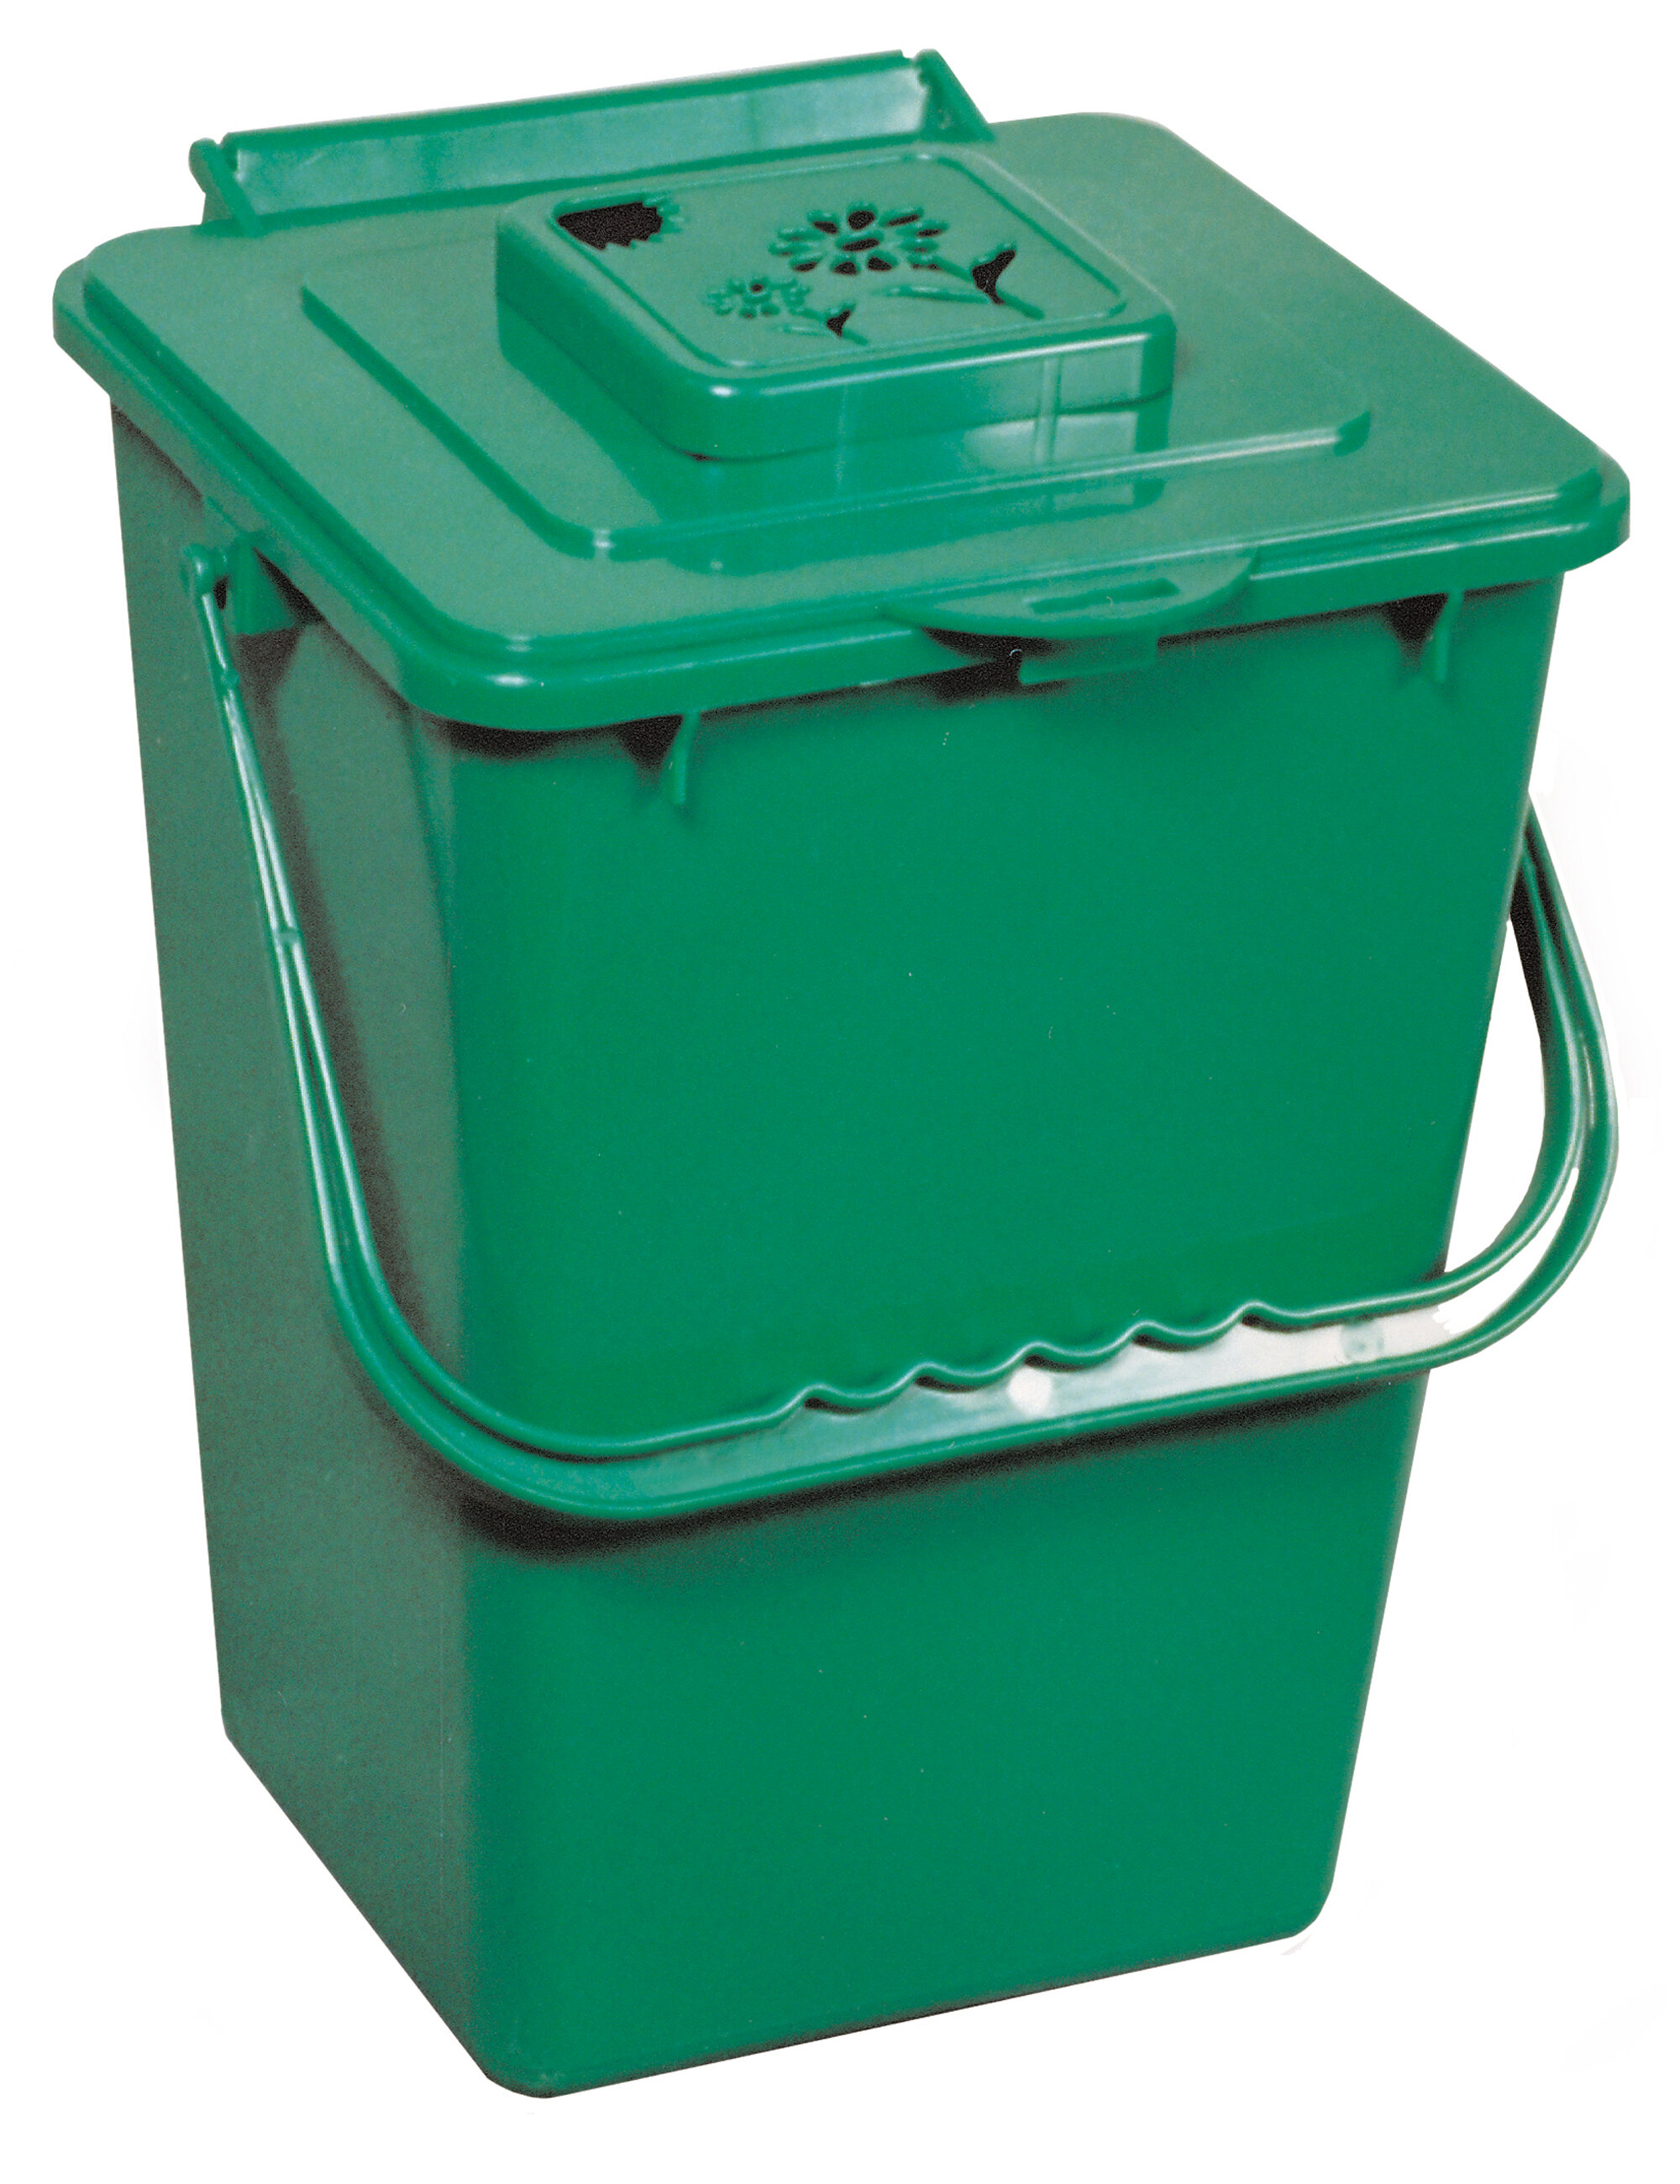 Exaco 2.4 Gal. Kitchen Composter & Reviews | Wayfair